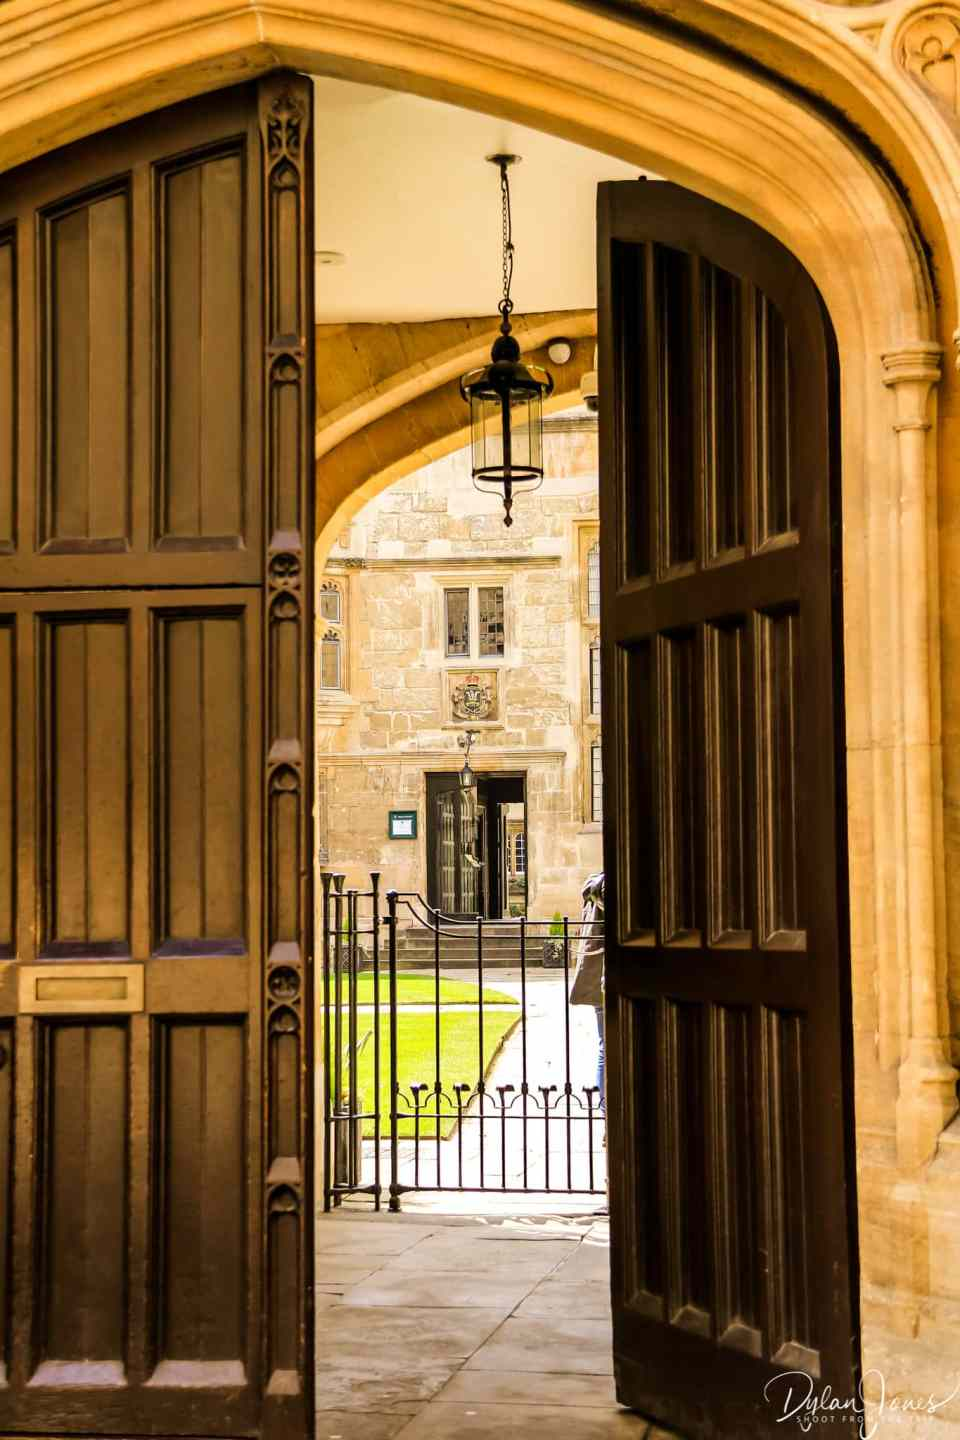 A view through an archway during a weekend in Oxford